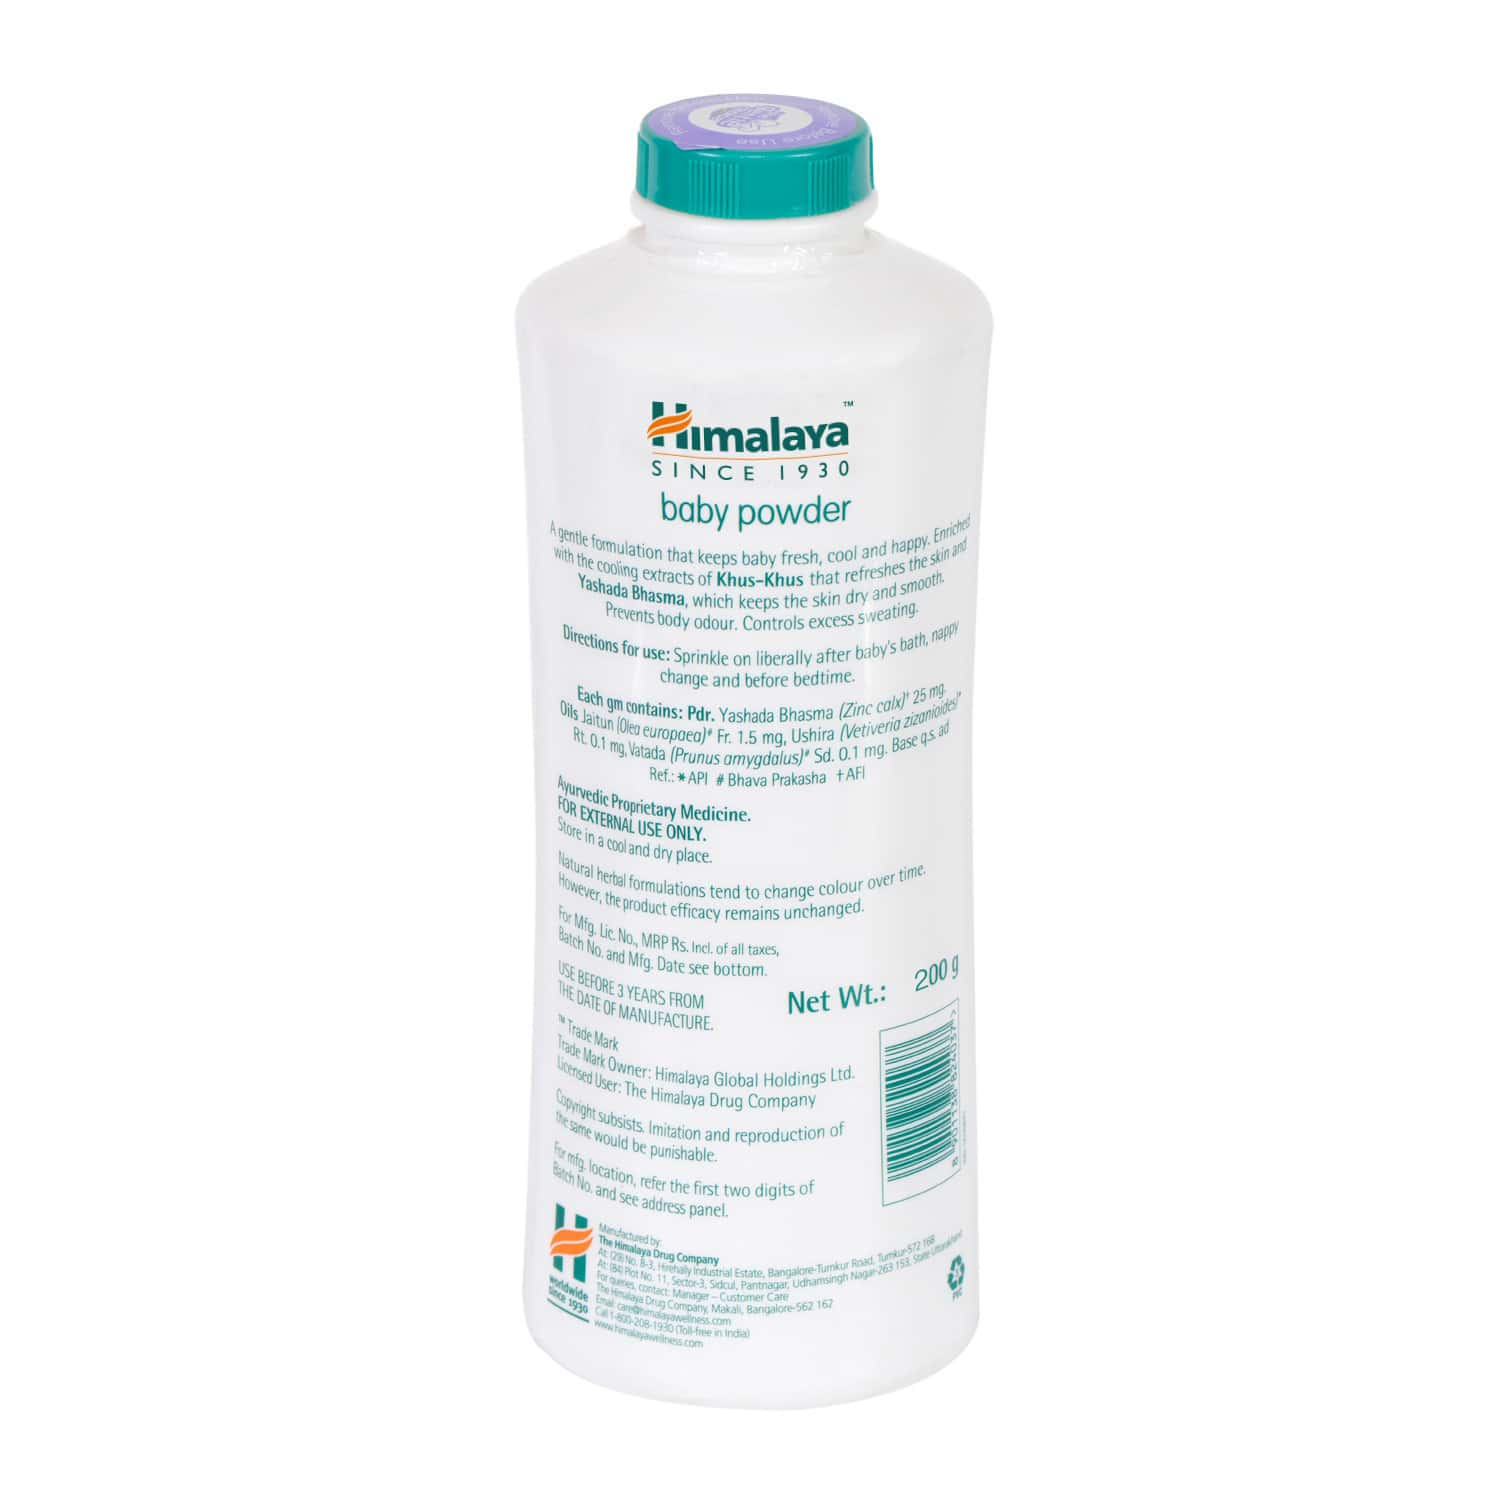 Himalaya Baby Powder Bottle Of 200 G